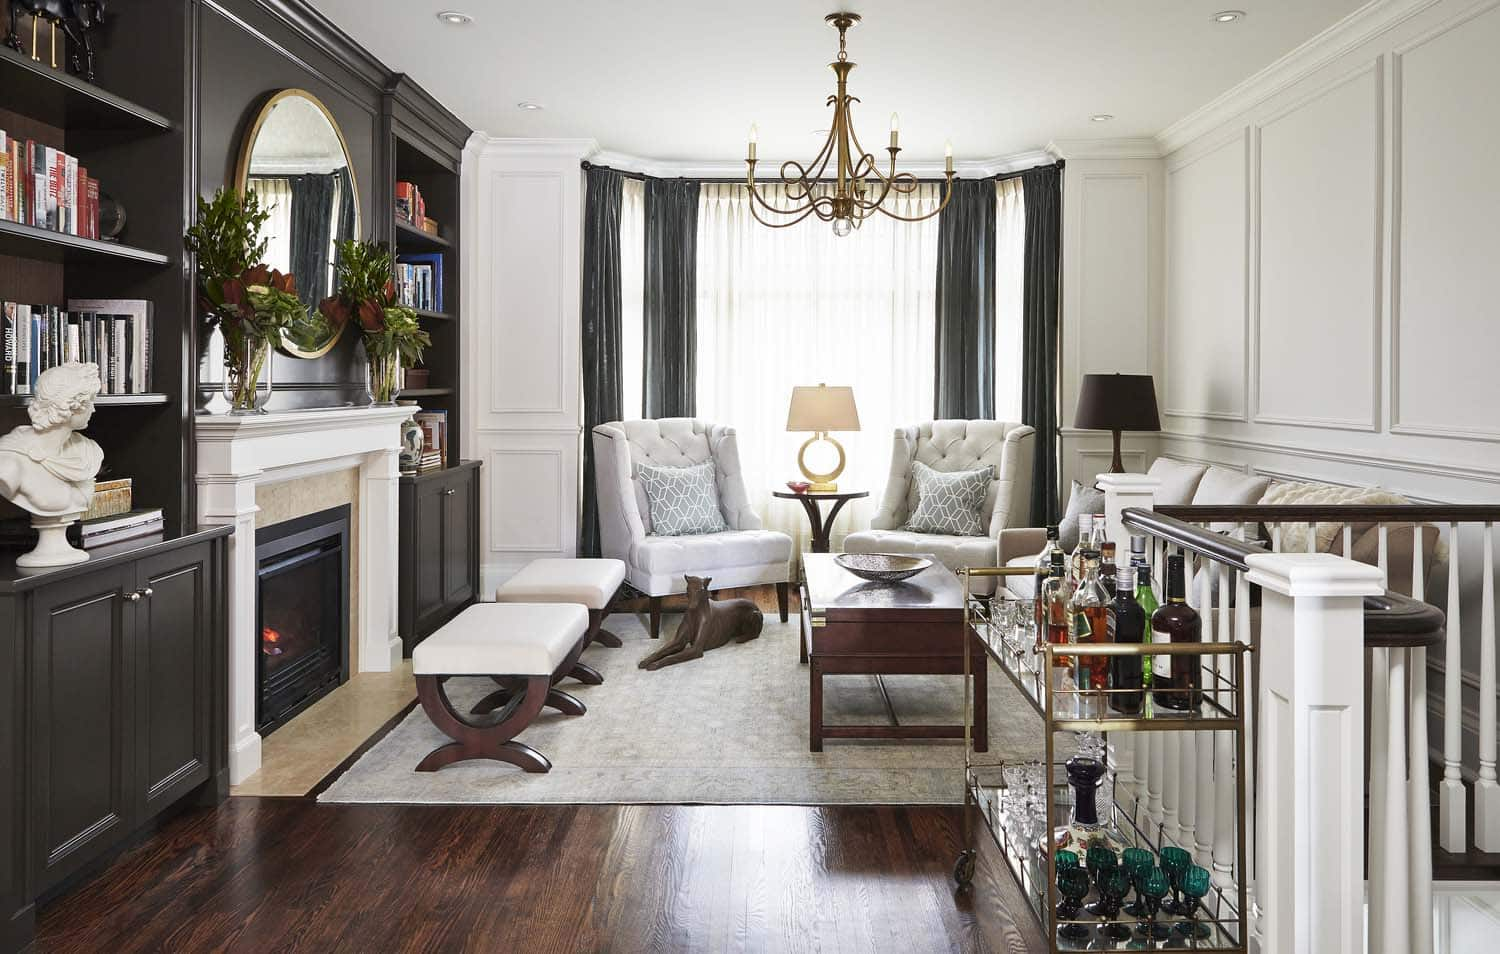 Image of living area with built in cabinets and fireplace, designed by Laura Stein Interiors.